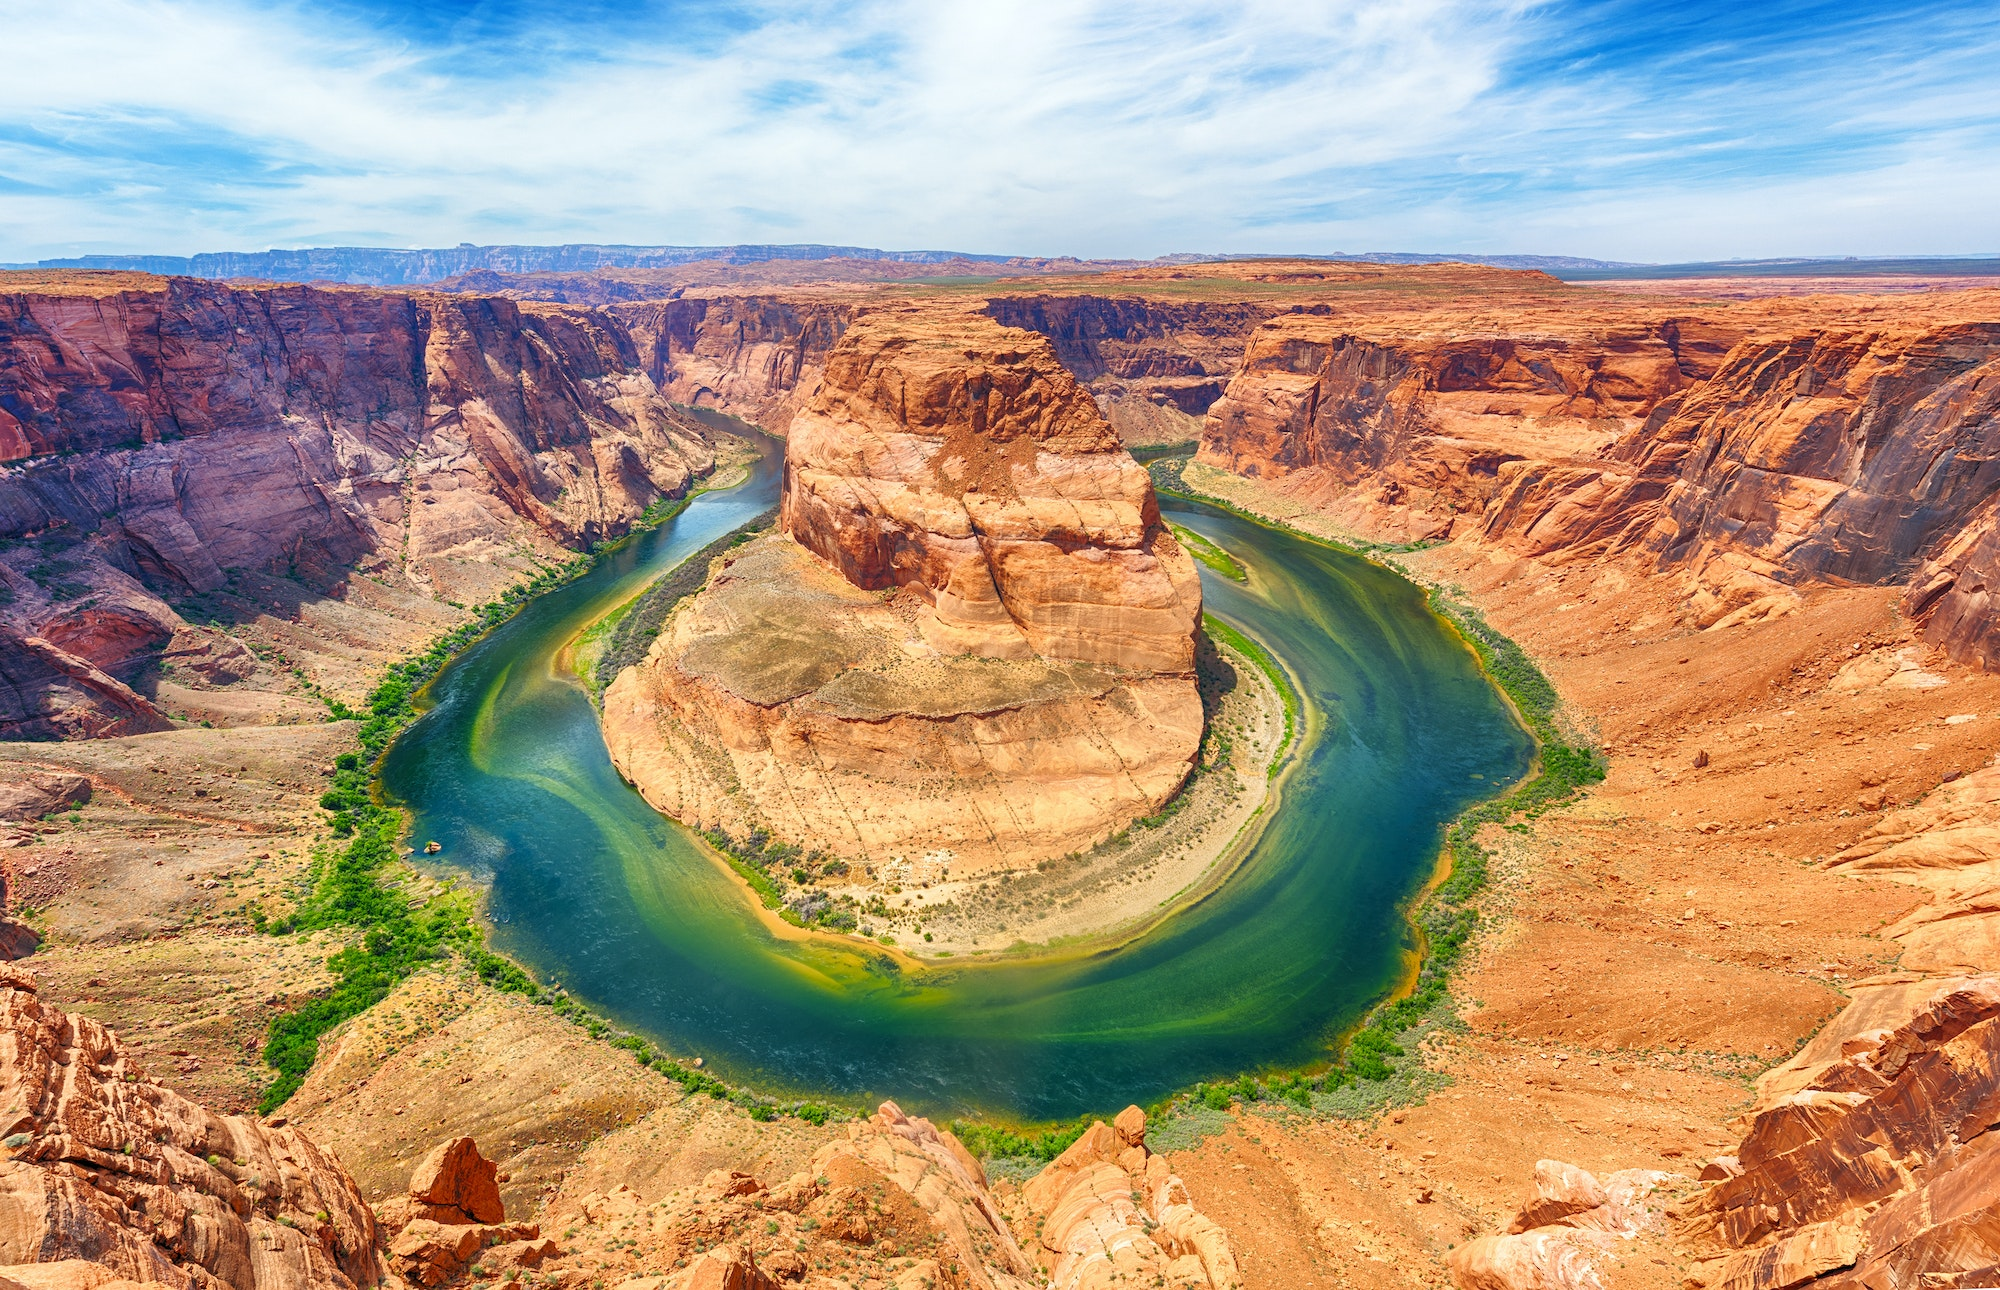 Horseshoe Bend Adds Entrance Fee Due to Instagram Popularity